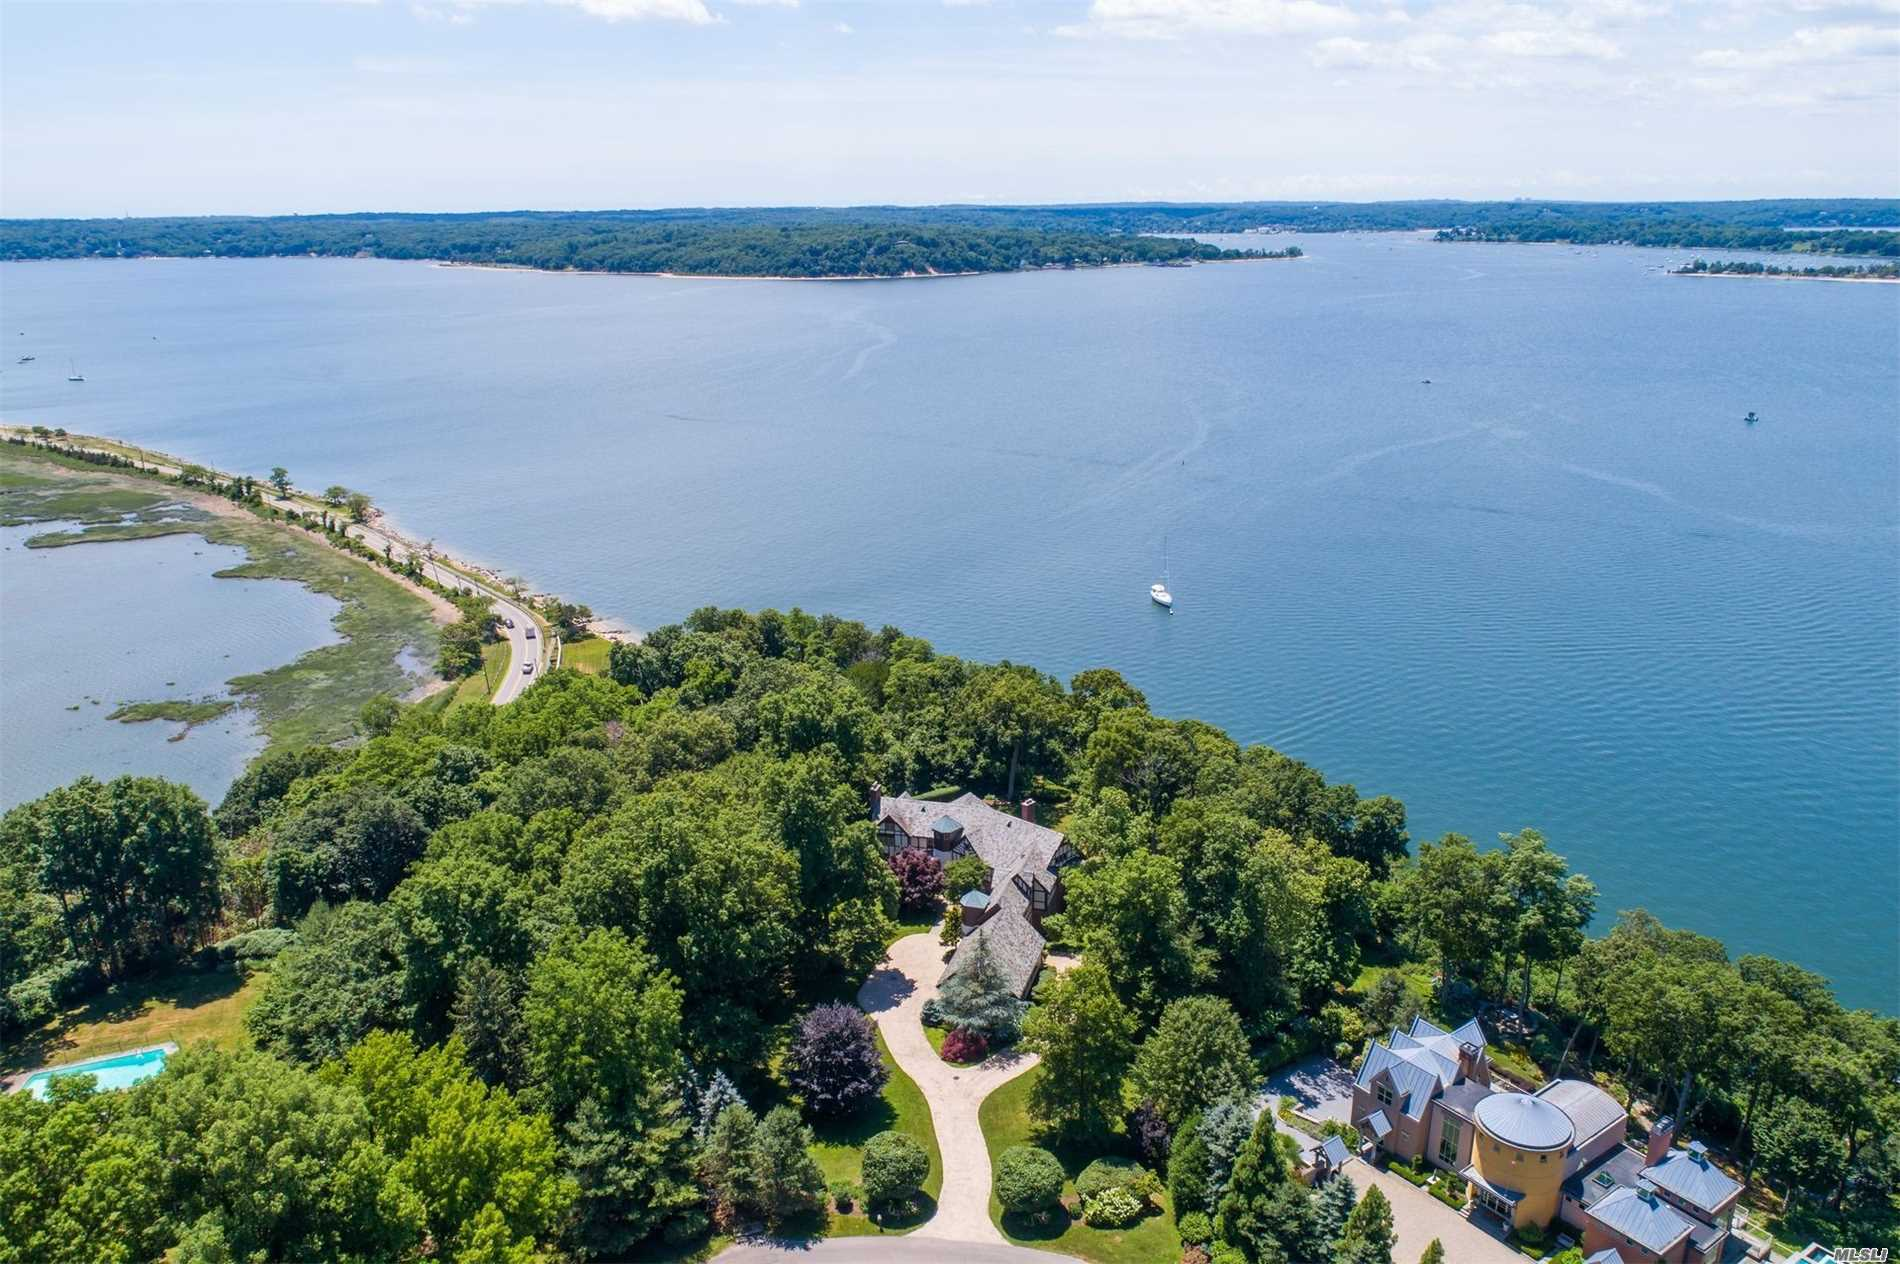 Direct Waterfront!!! Enjoy Sunsets All Year Long From This Custom Built Home (1997) A Fabulous Hampton Alternative! 1 Hour From Manhattan. Spectacular Panoramic Vista To Centre Island And Connecticut. Fort Hill Membership Dues $1, 800 Per Year Includes Beach, Mooring And Tennis. Award Winning Cold Spring Harbor Schools #2.